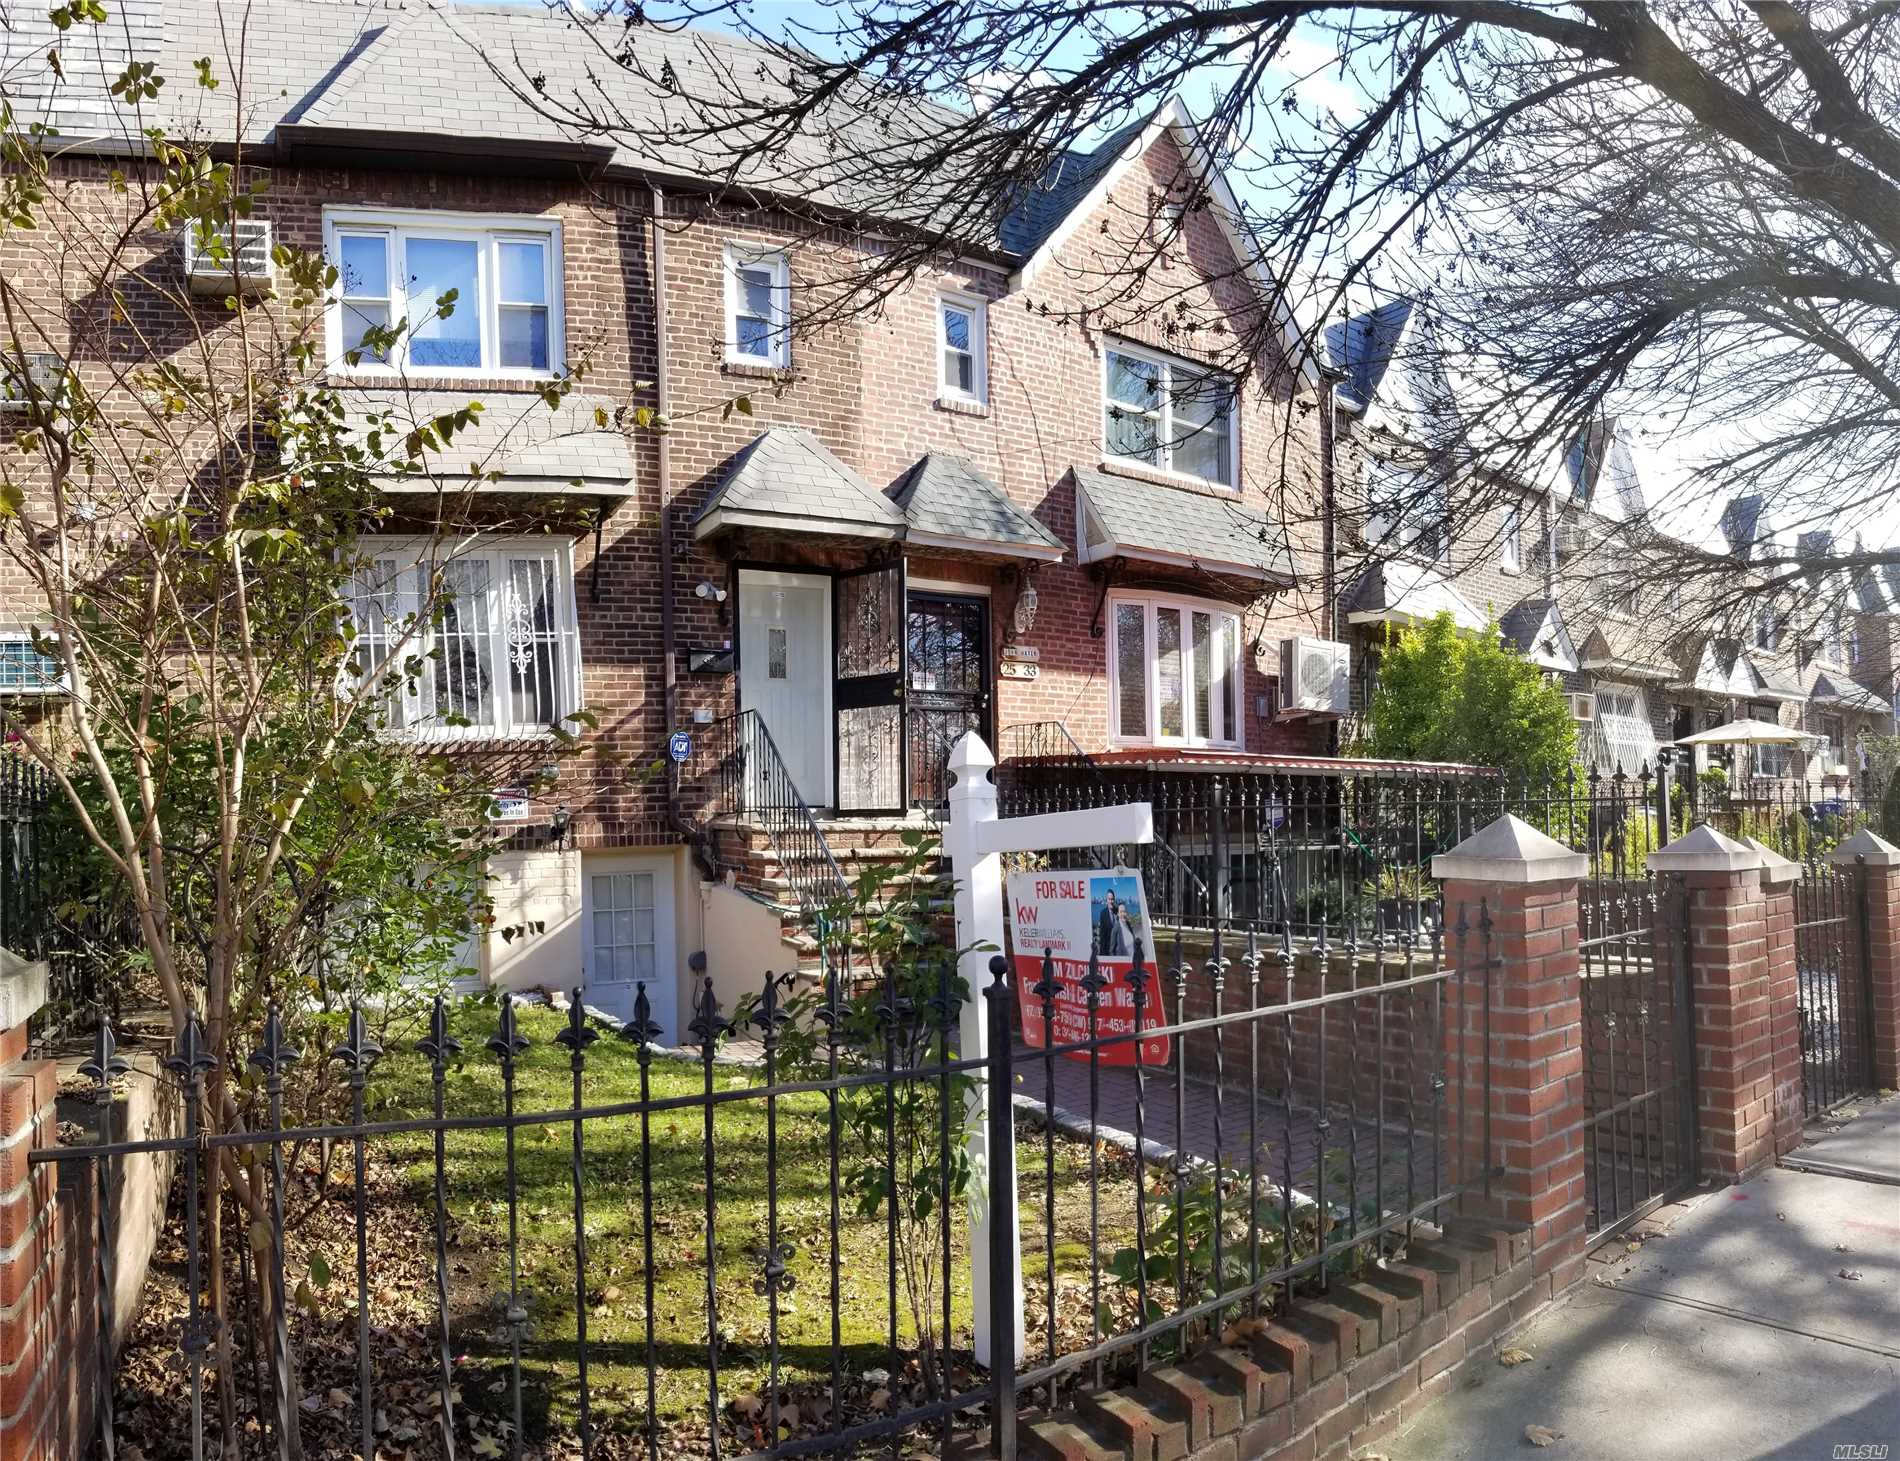 Wow! Talk About Location!! This 2 Family Jackson Heights Beauty Has It All! Location, Condition, & Price!! Have You Ever Wanted To Life Near A Park?(Gorman Playground 100 Yds Away!) How About Home Depot, Astoria Blvd And The G.C.Pwy Are Just Blocks Away! Have You Ever Wanted To Have Parking?(3Cars!) Have You Ever Wanted Large Bedrooms & Closets? What About A Warm Inviting Home In Move-In-Condition? Well Here's Your Chance! Hurry This Is A Super 4 Bedrm 2.5 Bth Winner That Will Not Last!